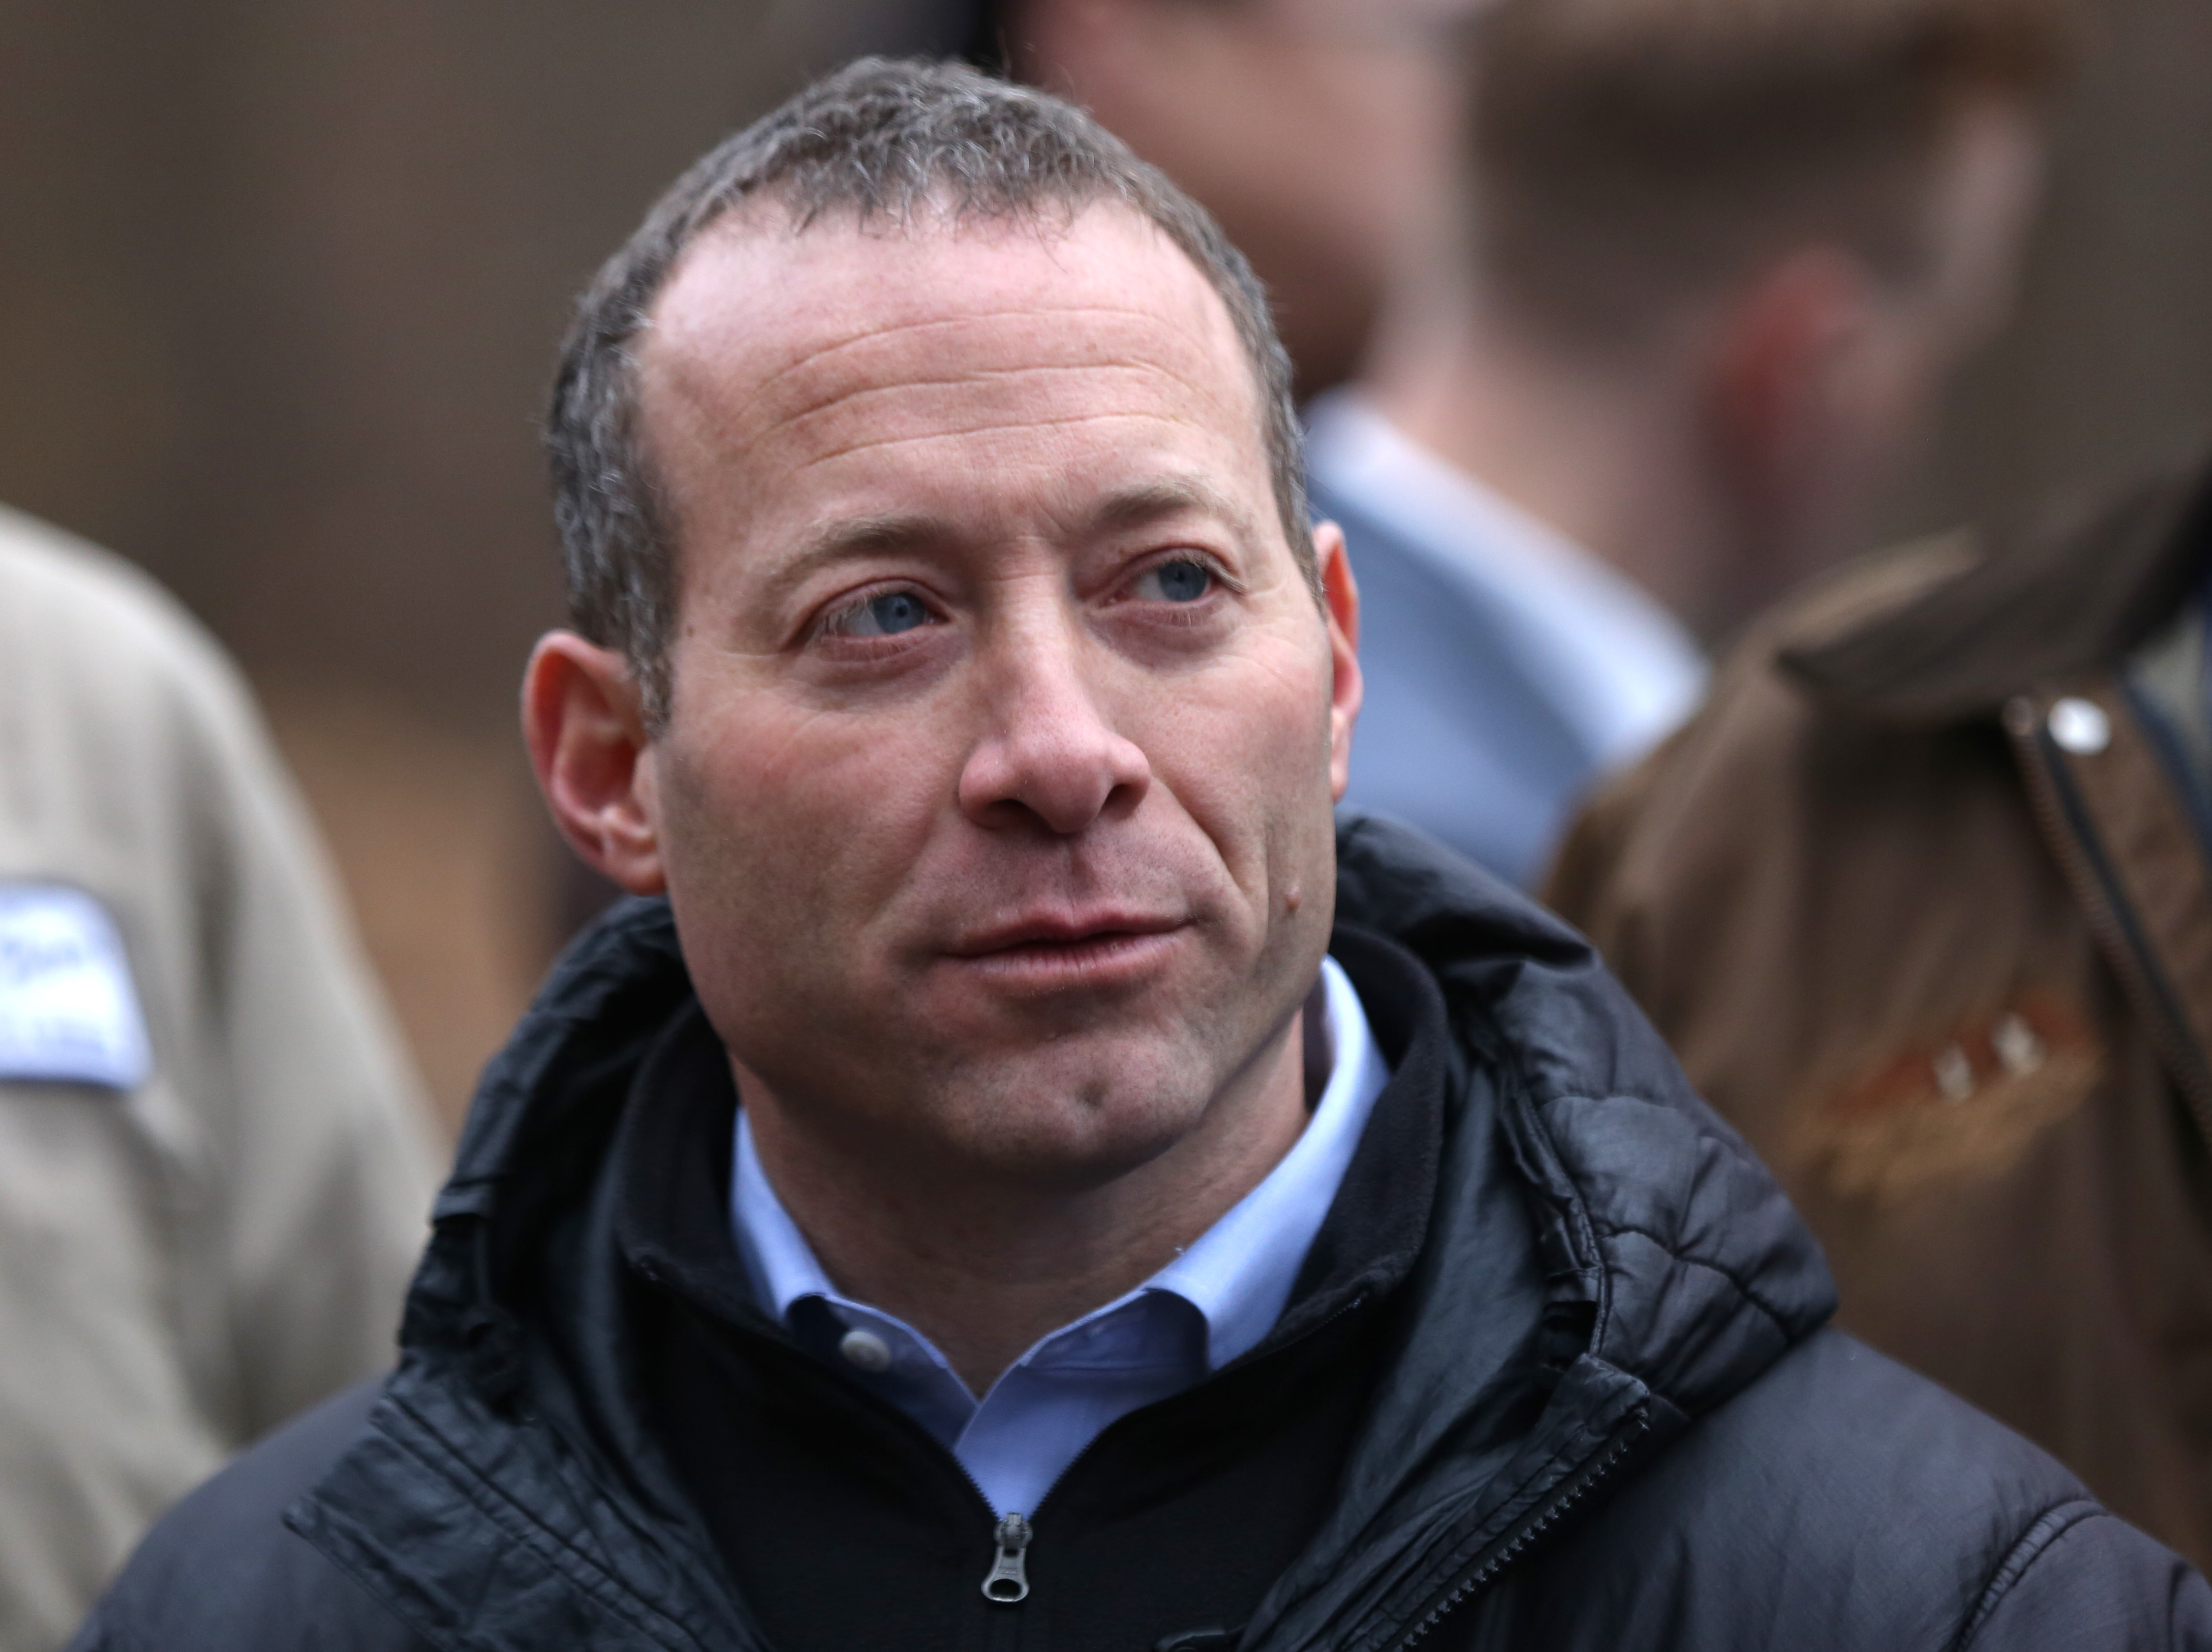 Do you know anti-Semitism when you see it? A Q&A with Rep. Josh Gottheimer